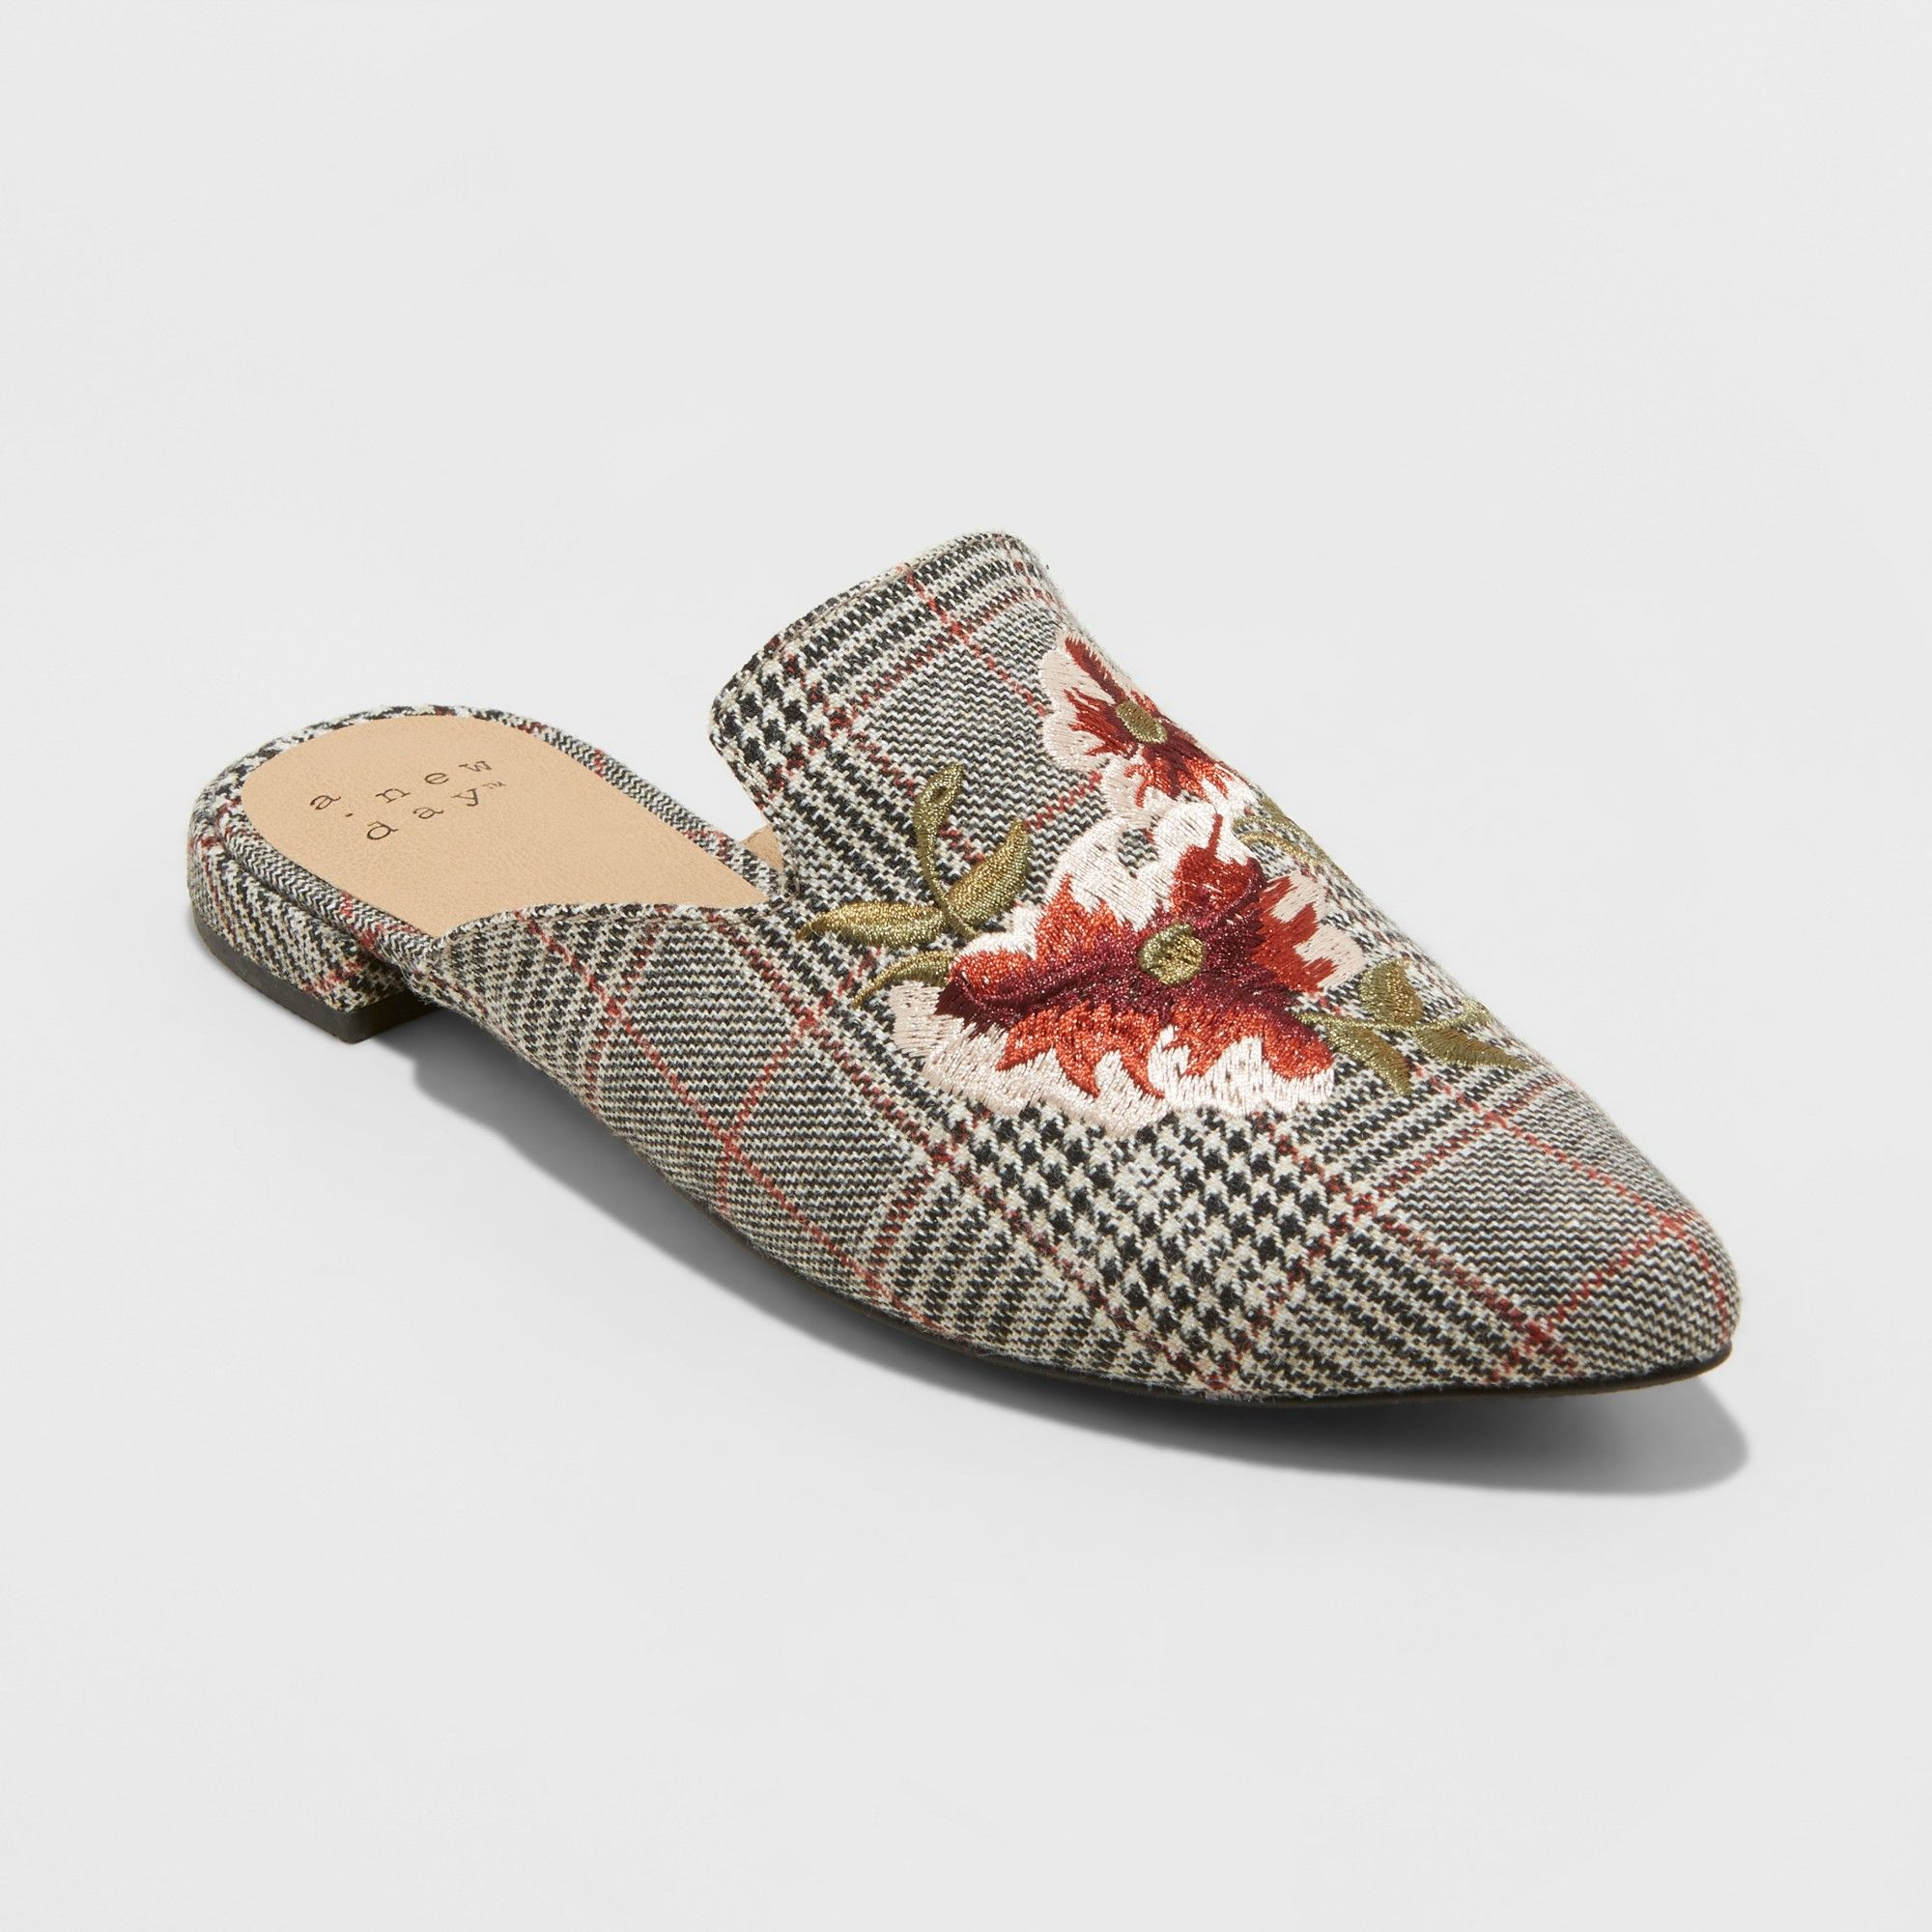 2422ffe0969 Women s Eve Plaid Embroidered Backless Mules - A New Day Gray 6 ...